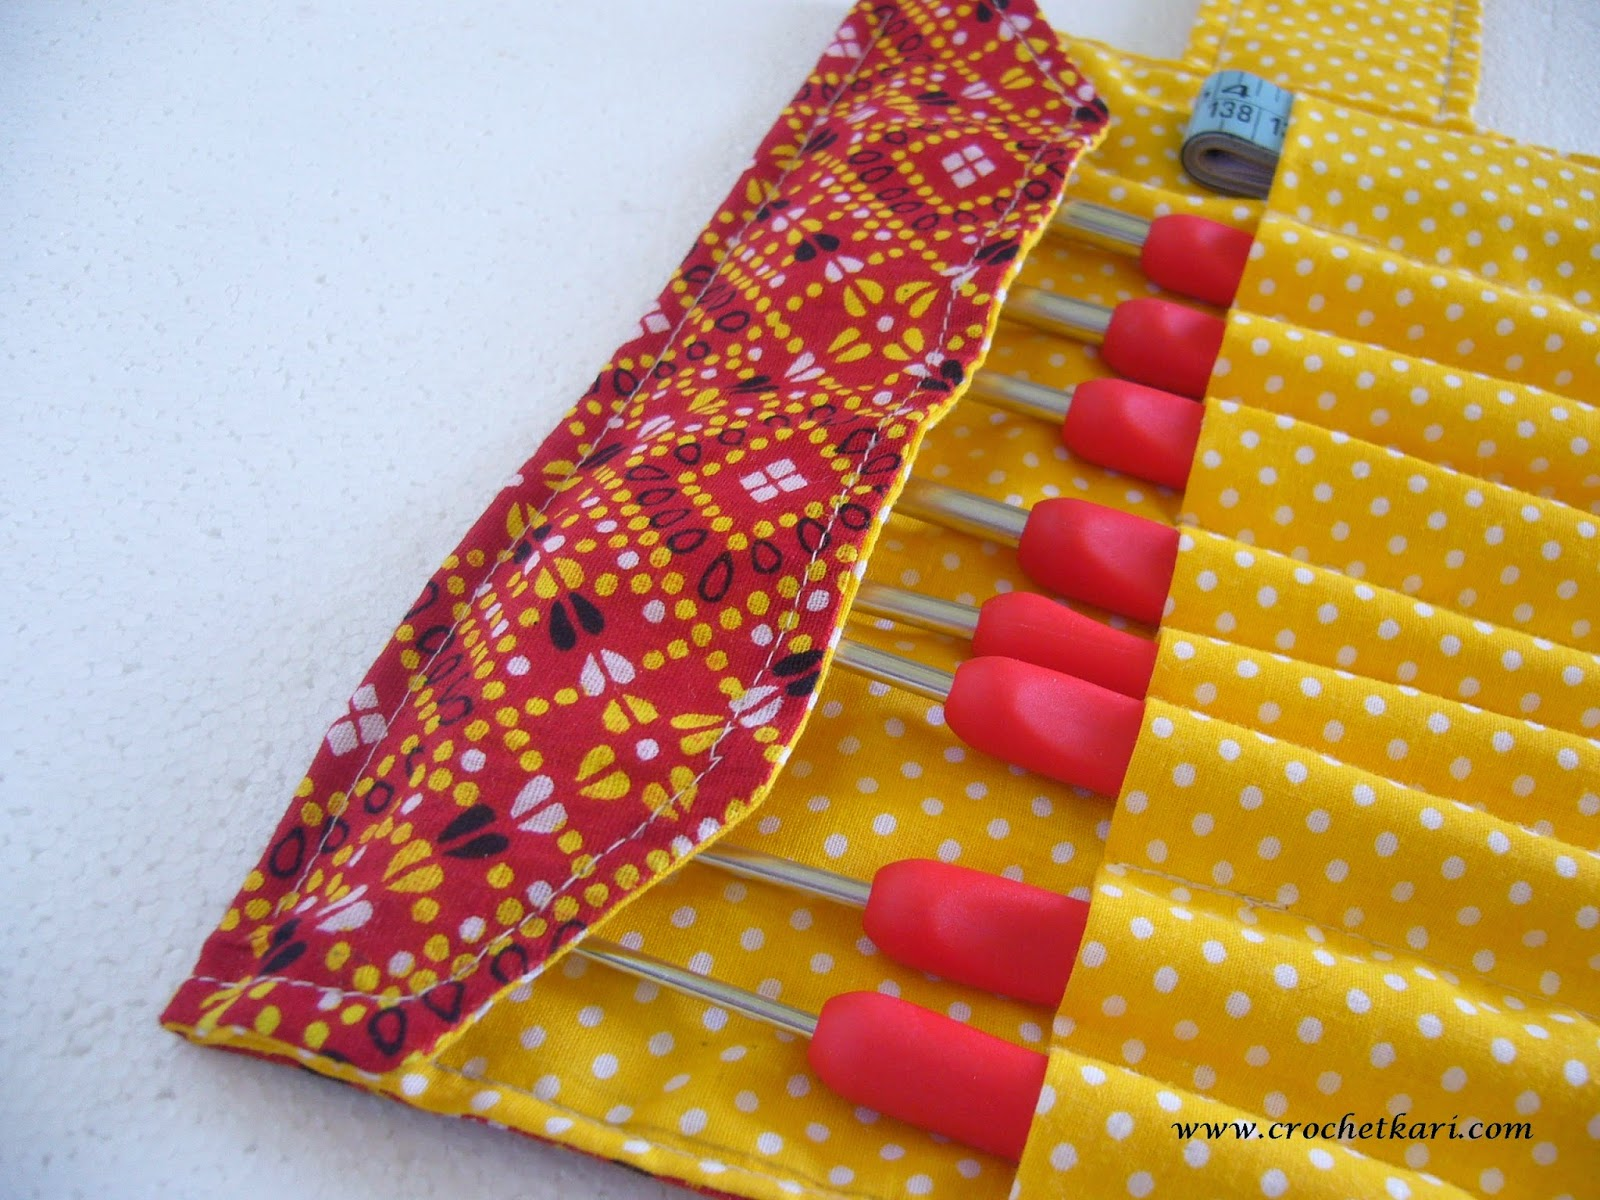 Crochet hook case detail